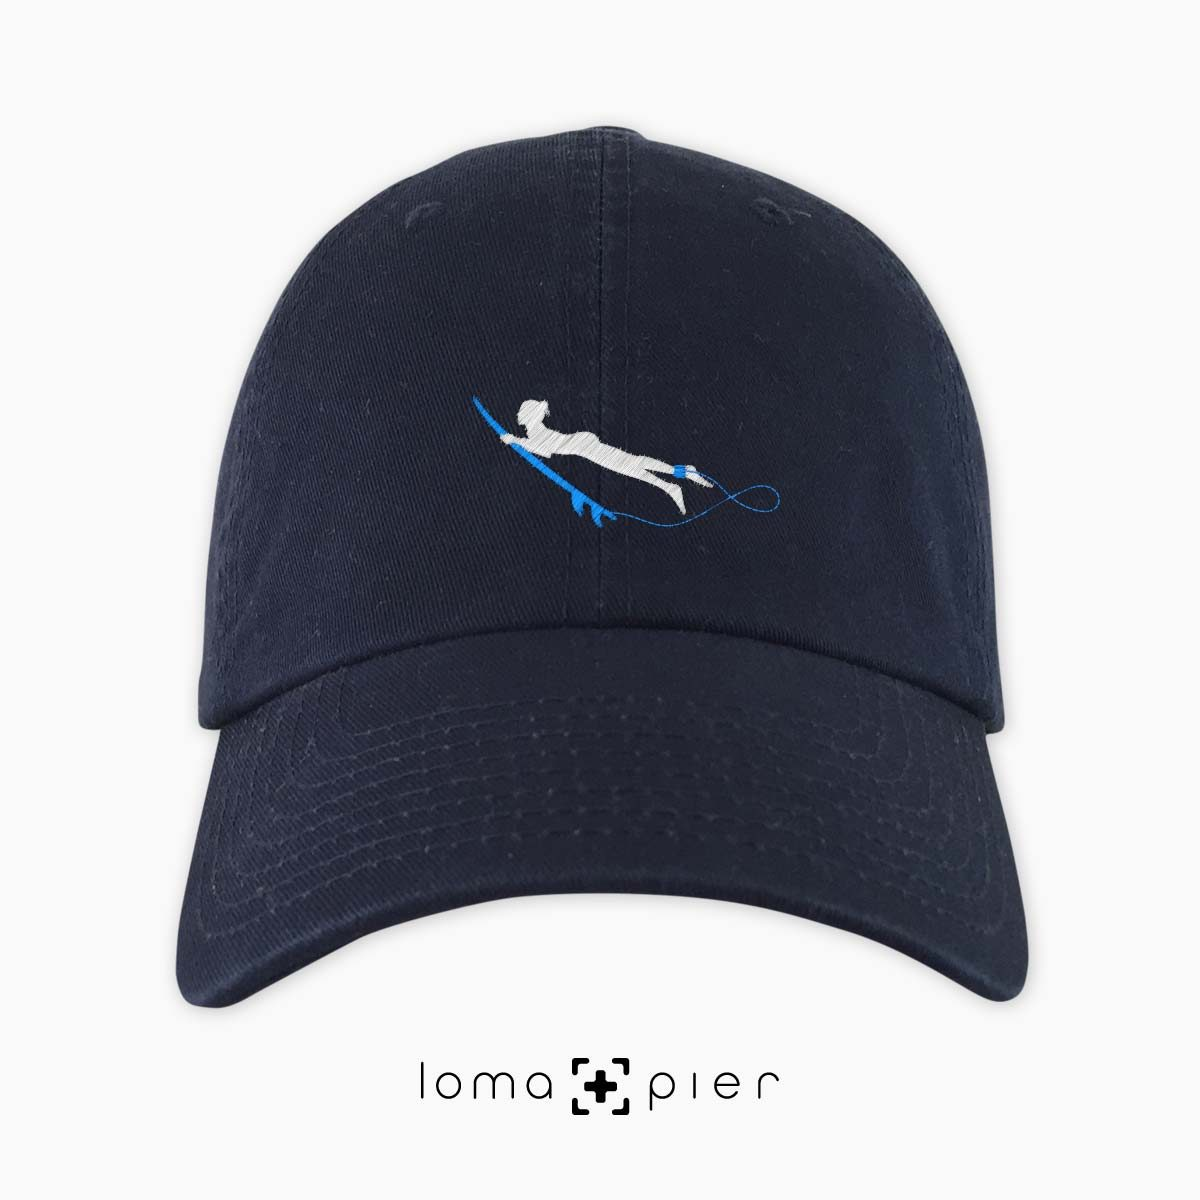 DUCK NAKED SURFER icon embroidered on a navy blue dad hat by loma+pier hat store made in the USA